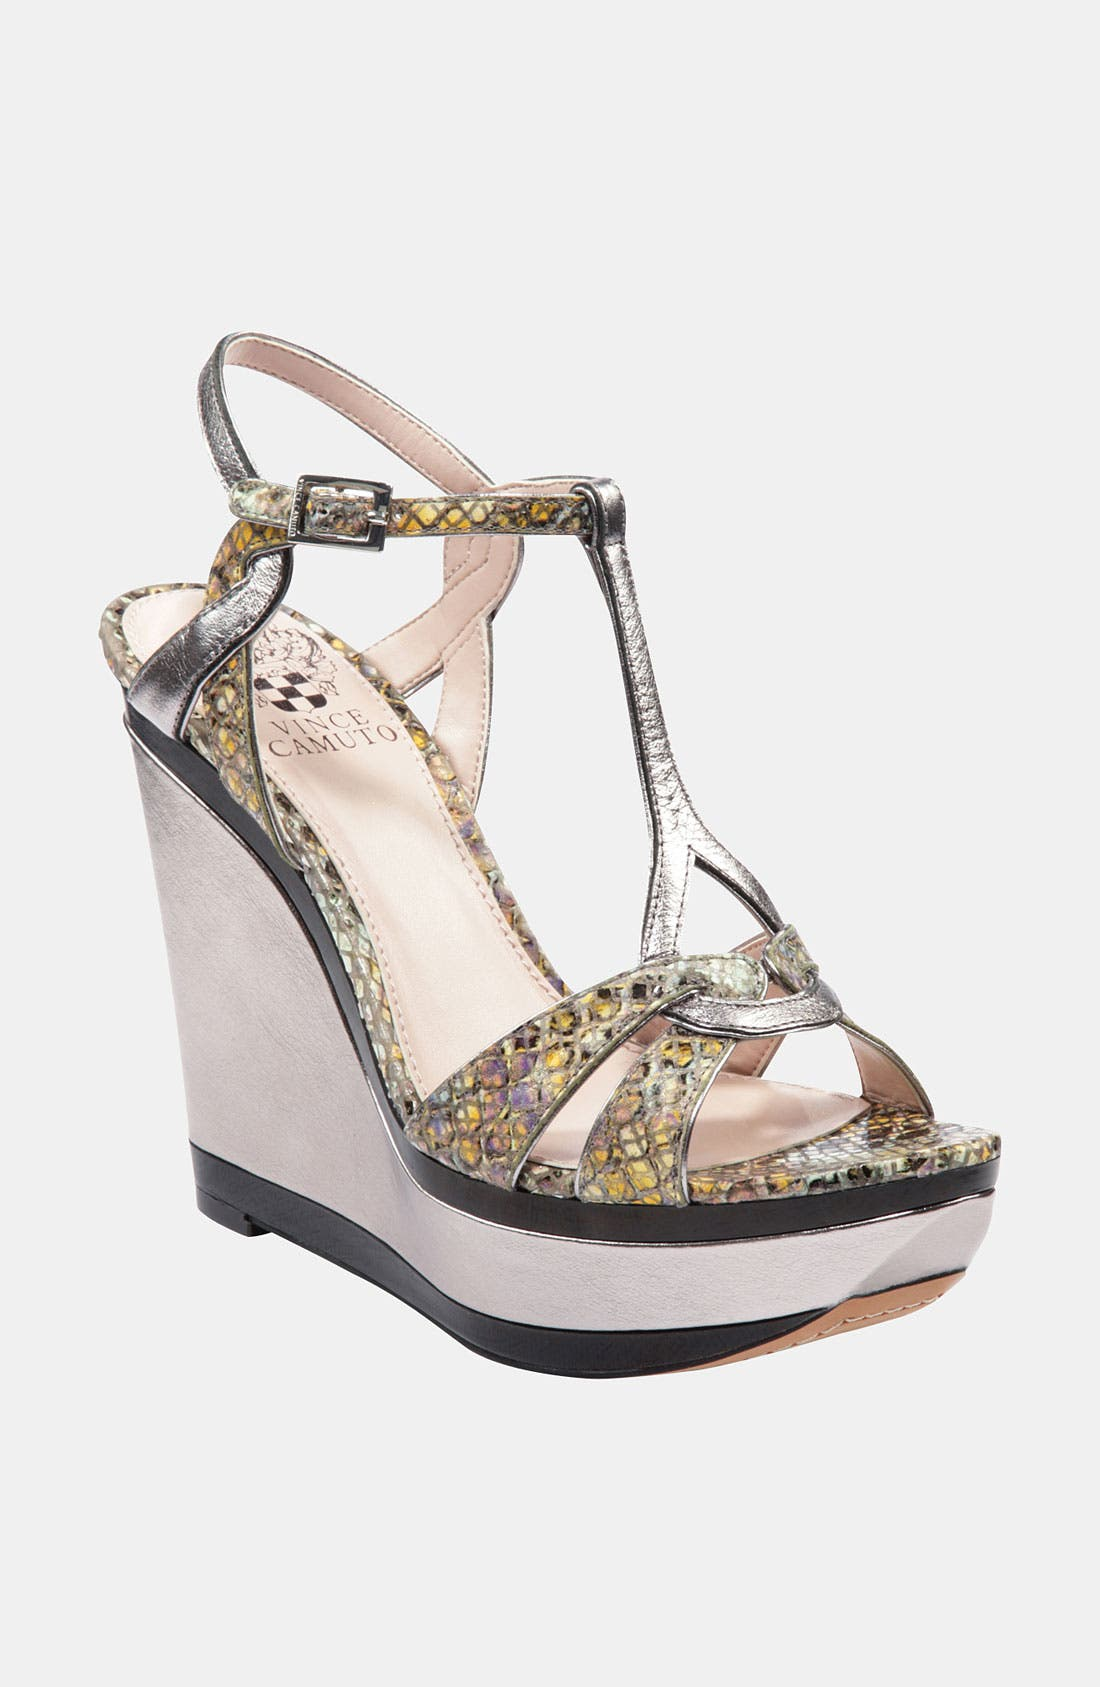 Alternate Image 1 Selected - Vince Camuto 'Casidy' Wedge Sandal (Online Only)